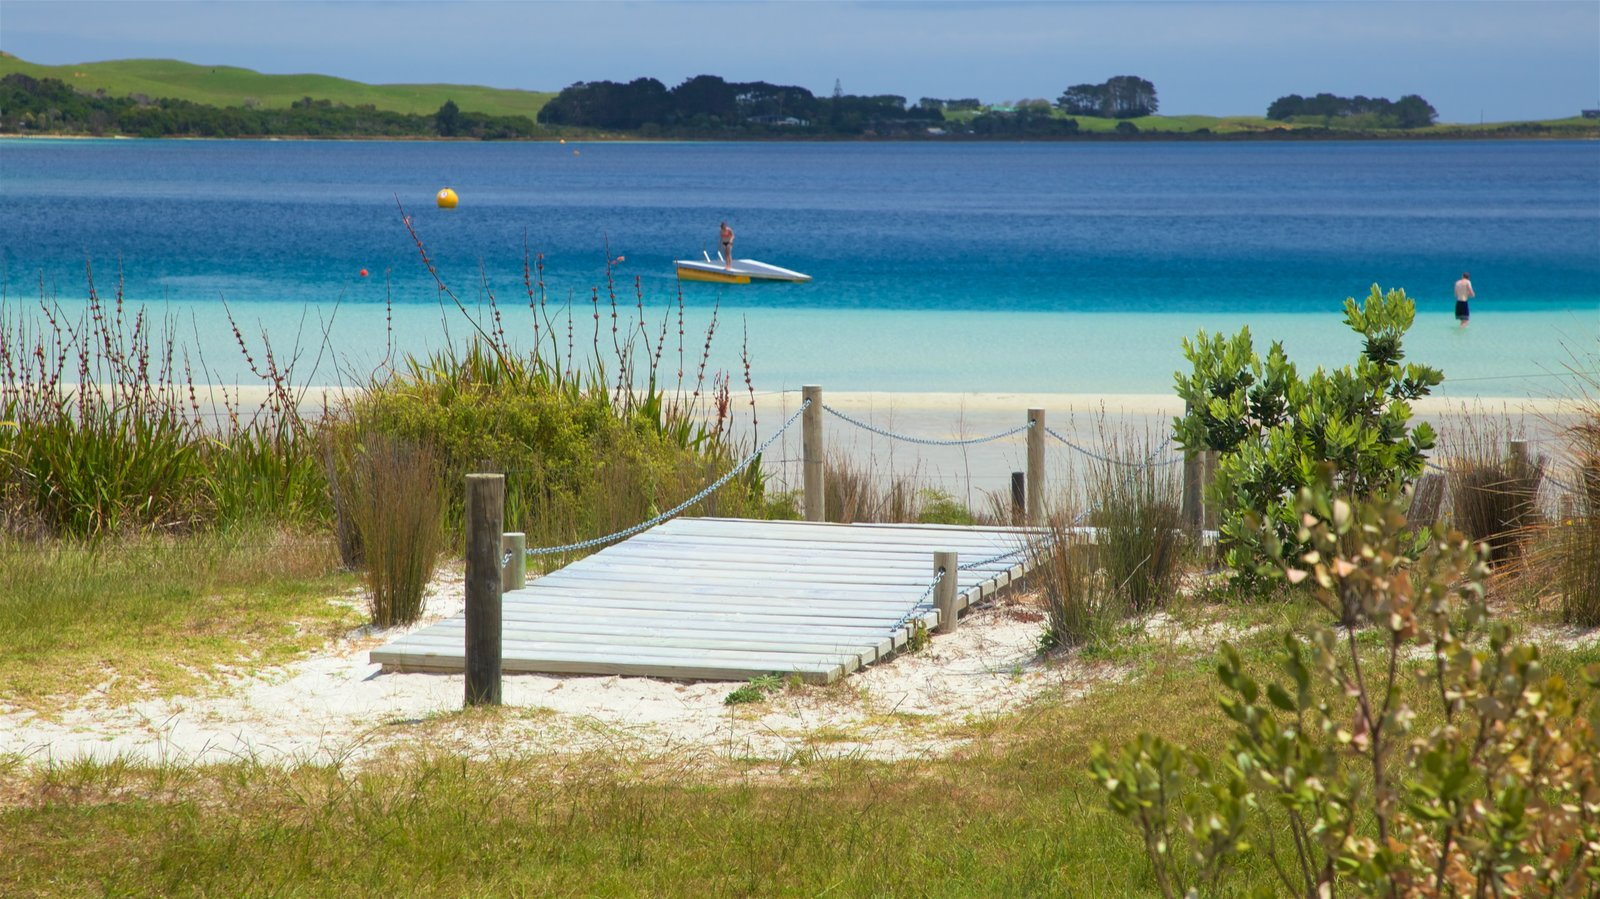 Kai Iwi Lakes featuring boating, a beach and a bay or harbor